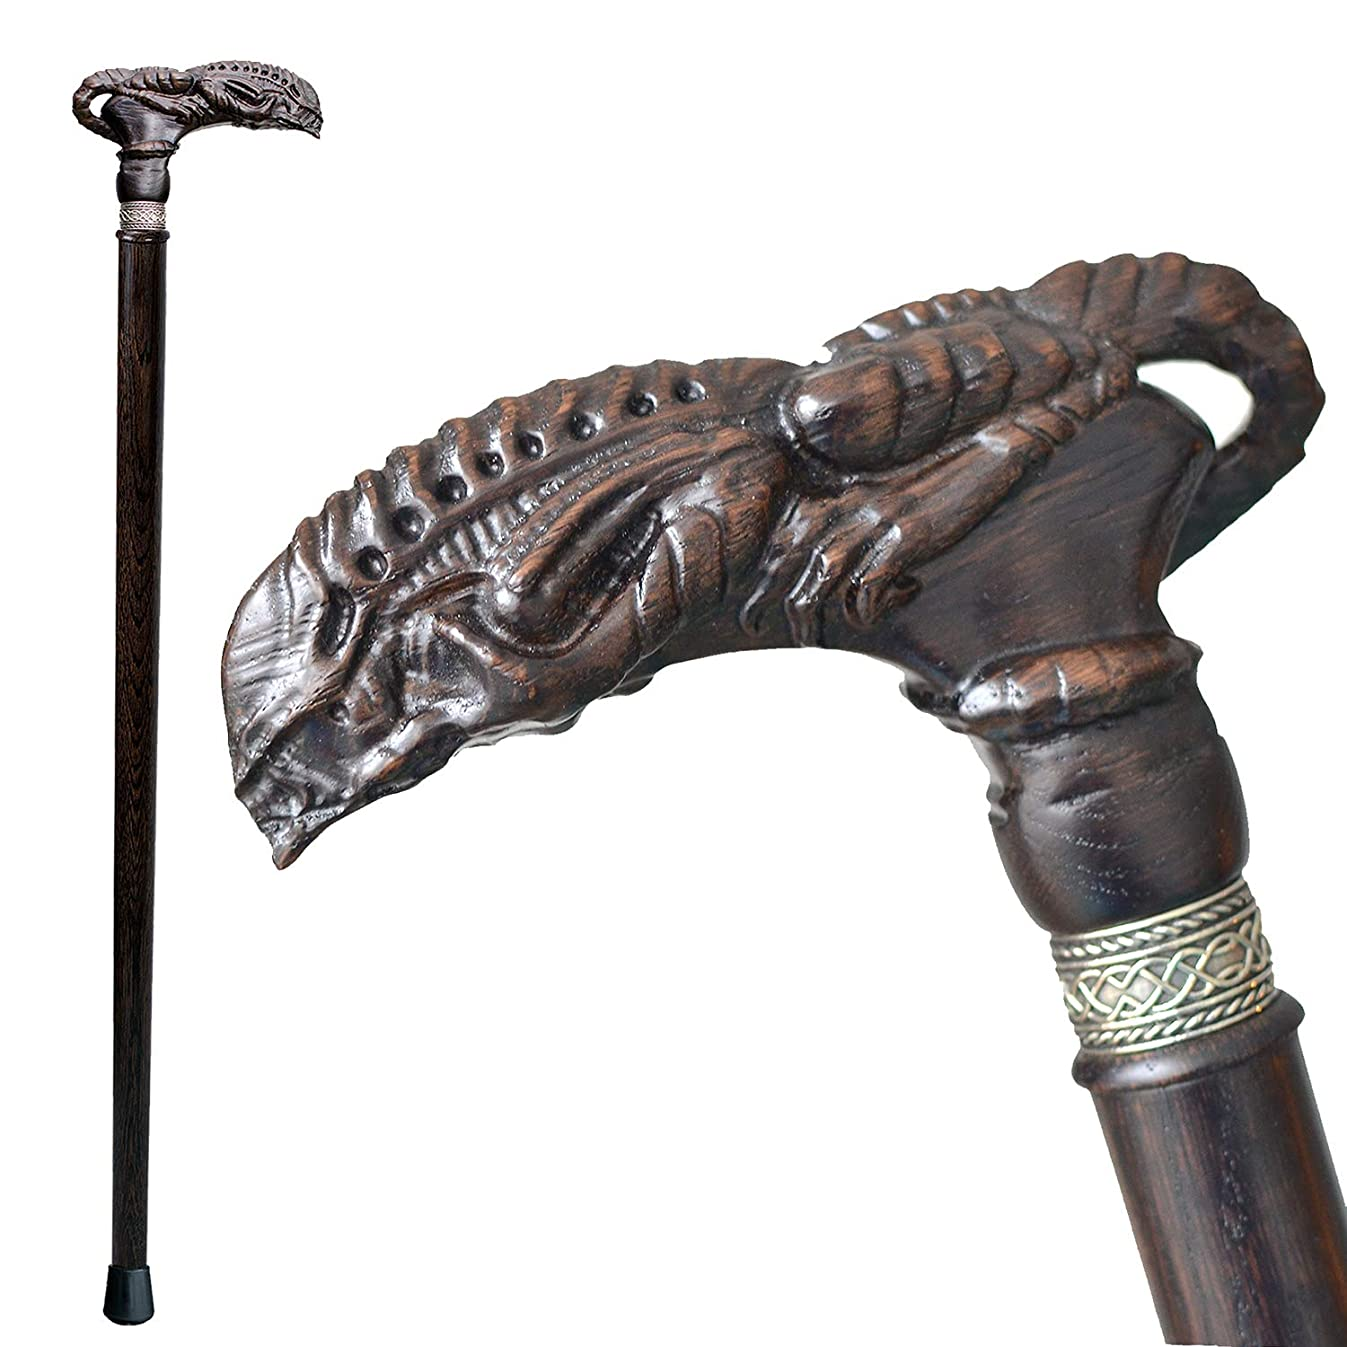 Asterom Fancy Carved Walking Canes for Men and Women - Alien Xenomorph - Unique Wooden Cane Fashionable